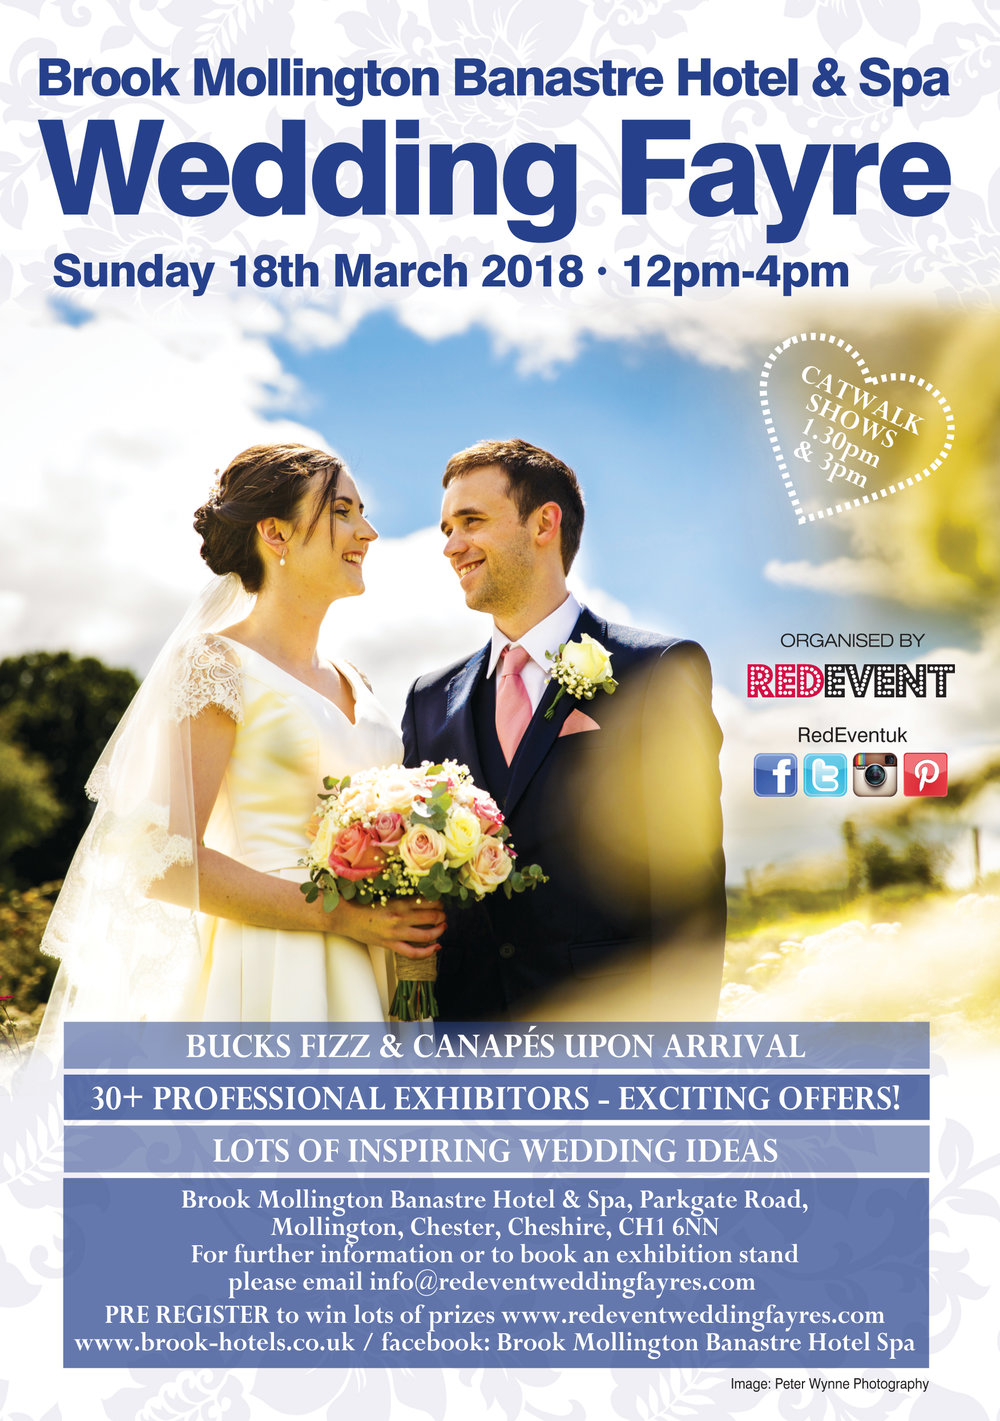 Brook Mollington Banastre Hotel & Spa Wedding Fayre flyer www.redeventweddingfayres.com